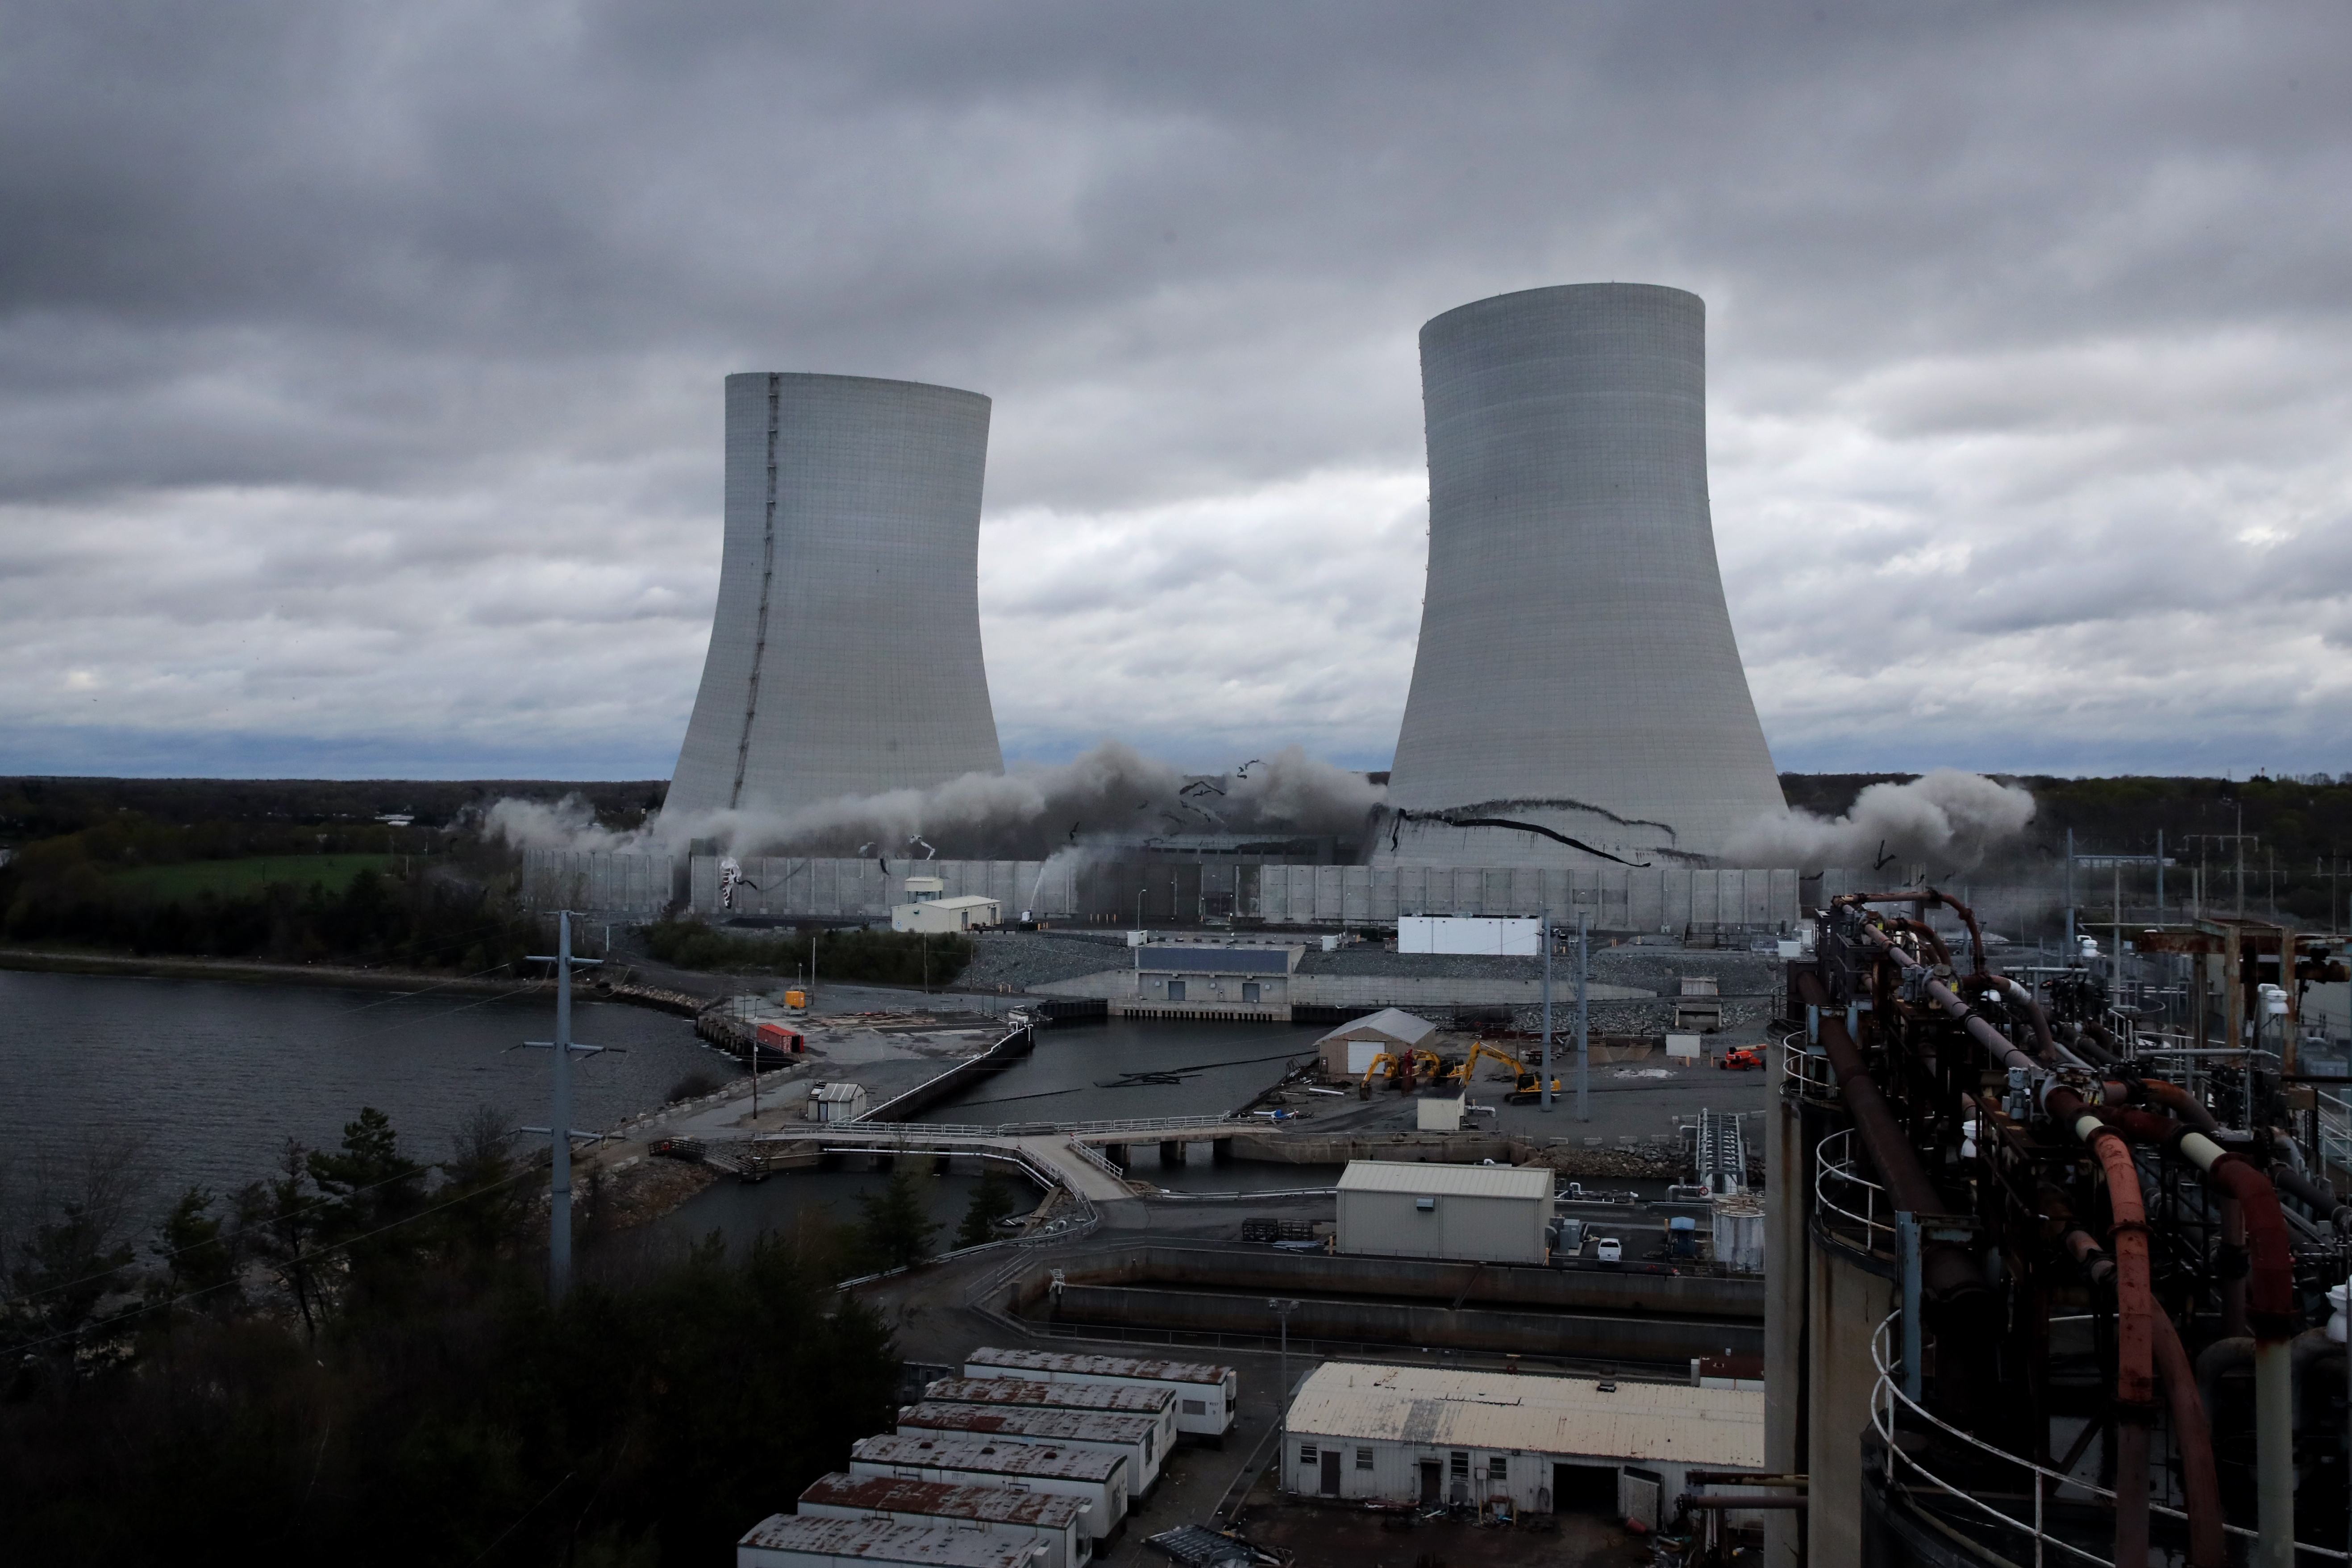 The battle over the Burrillville power plant takes center stage